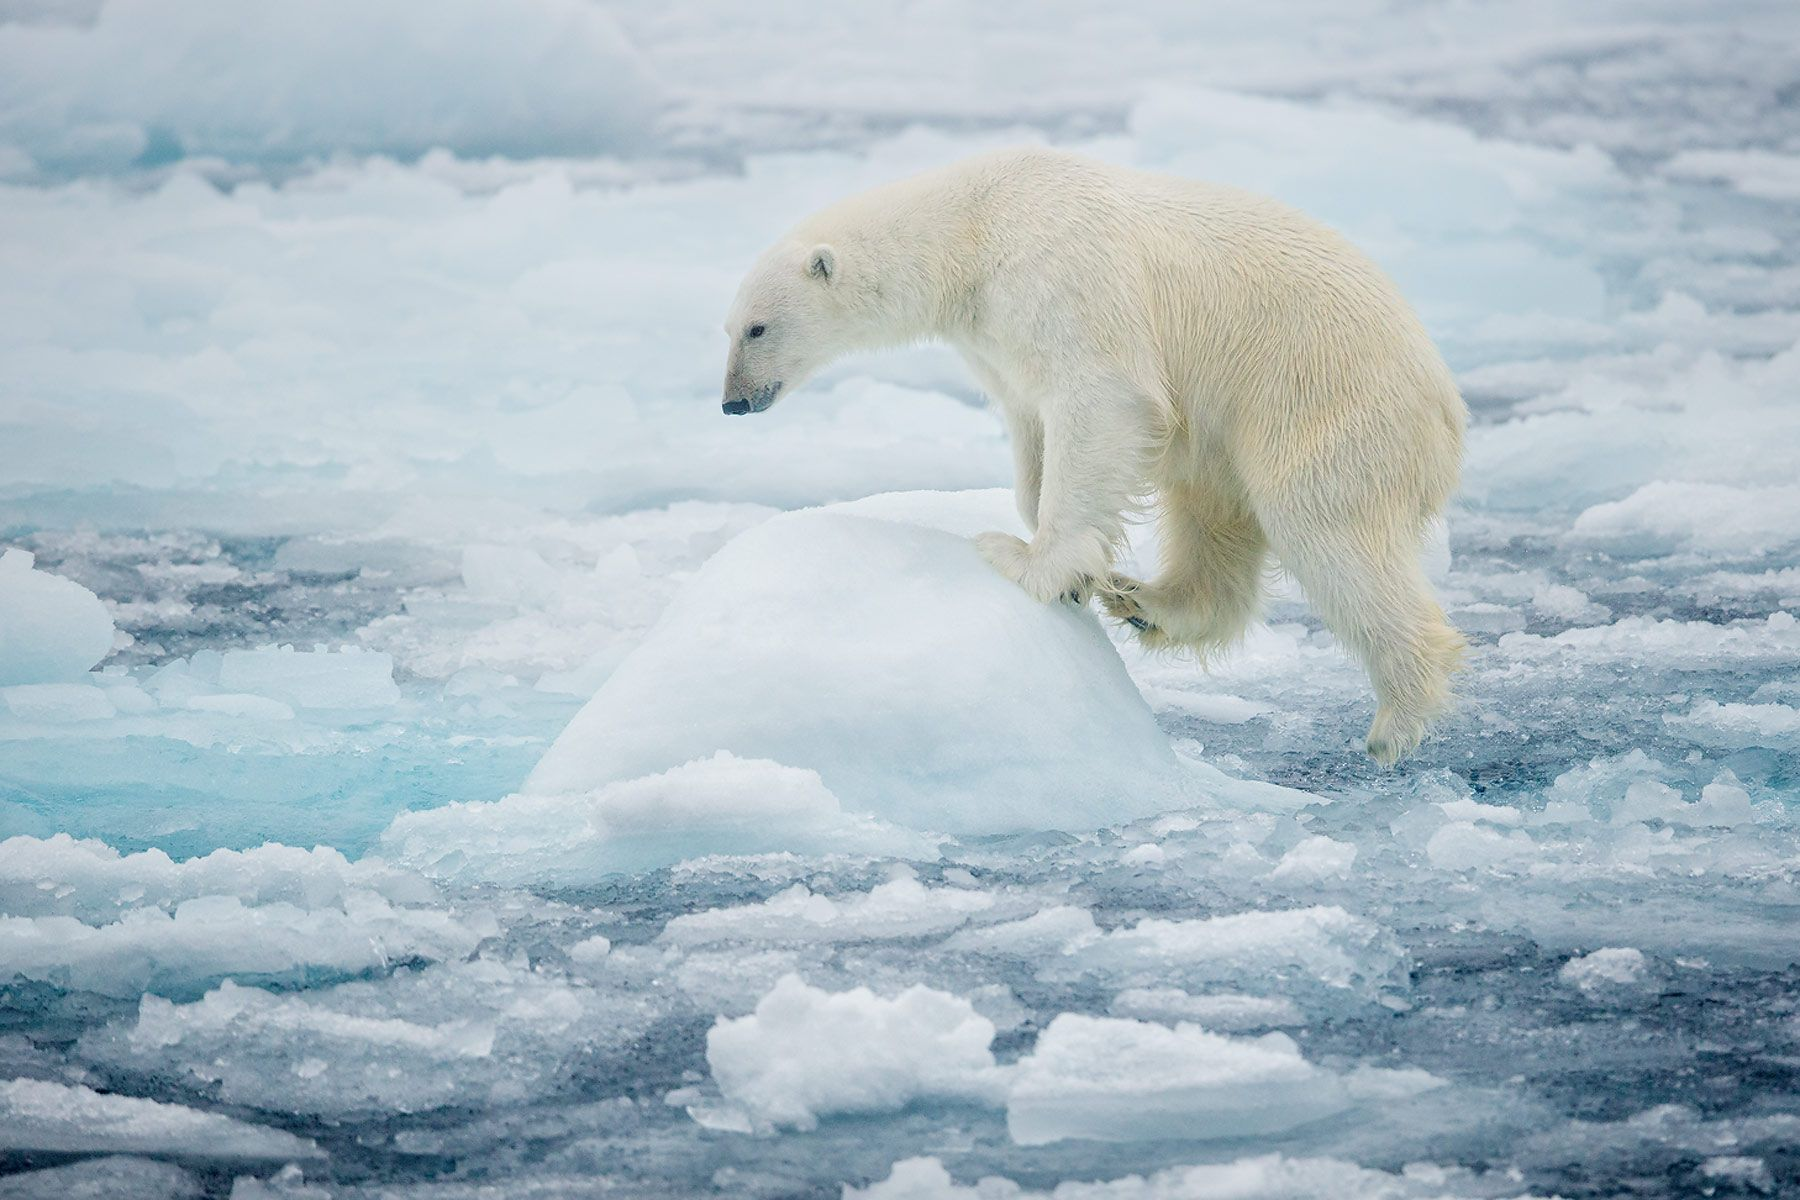 Polar-bear-climbing-on-piece-of-sea-ice_B8R4792-Sea-ice-at-81-degree-North,-Svalbard,-Arctic.jpg